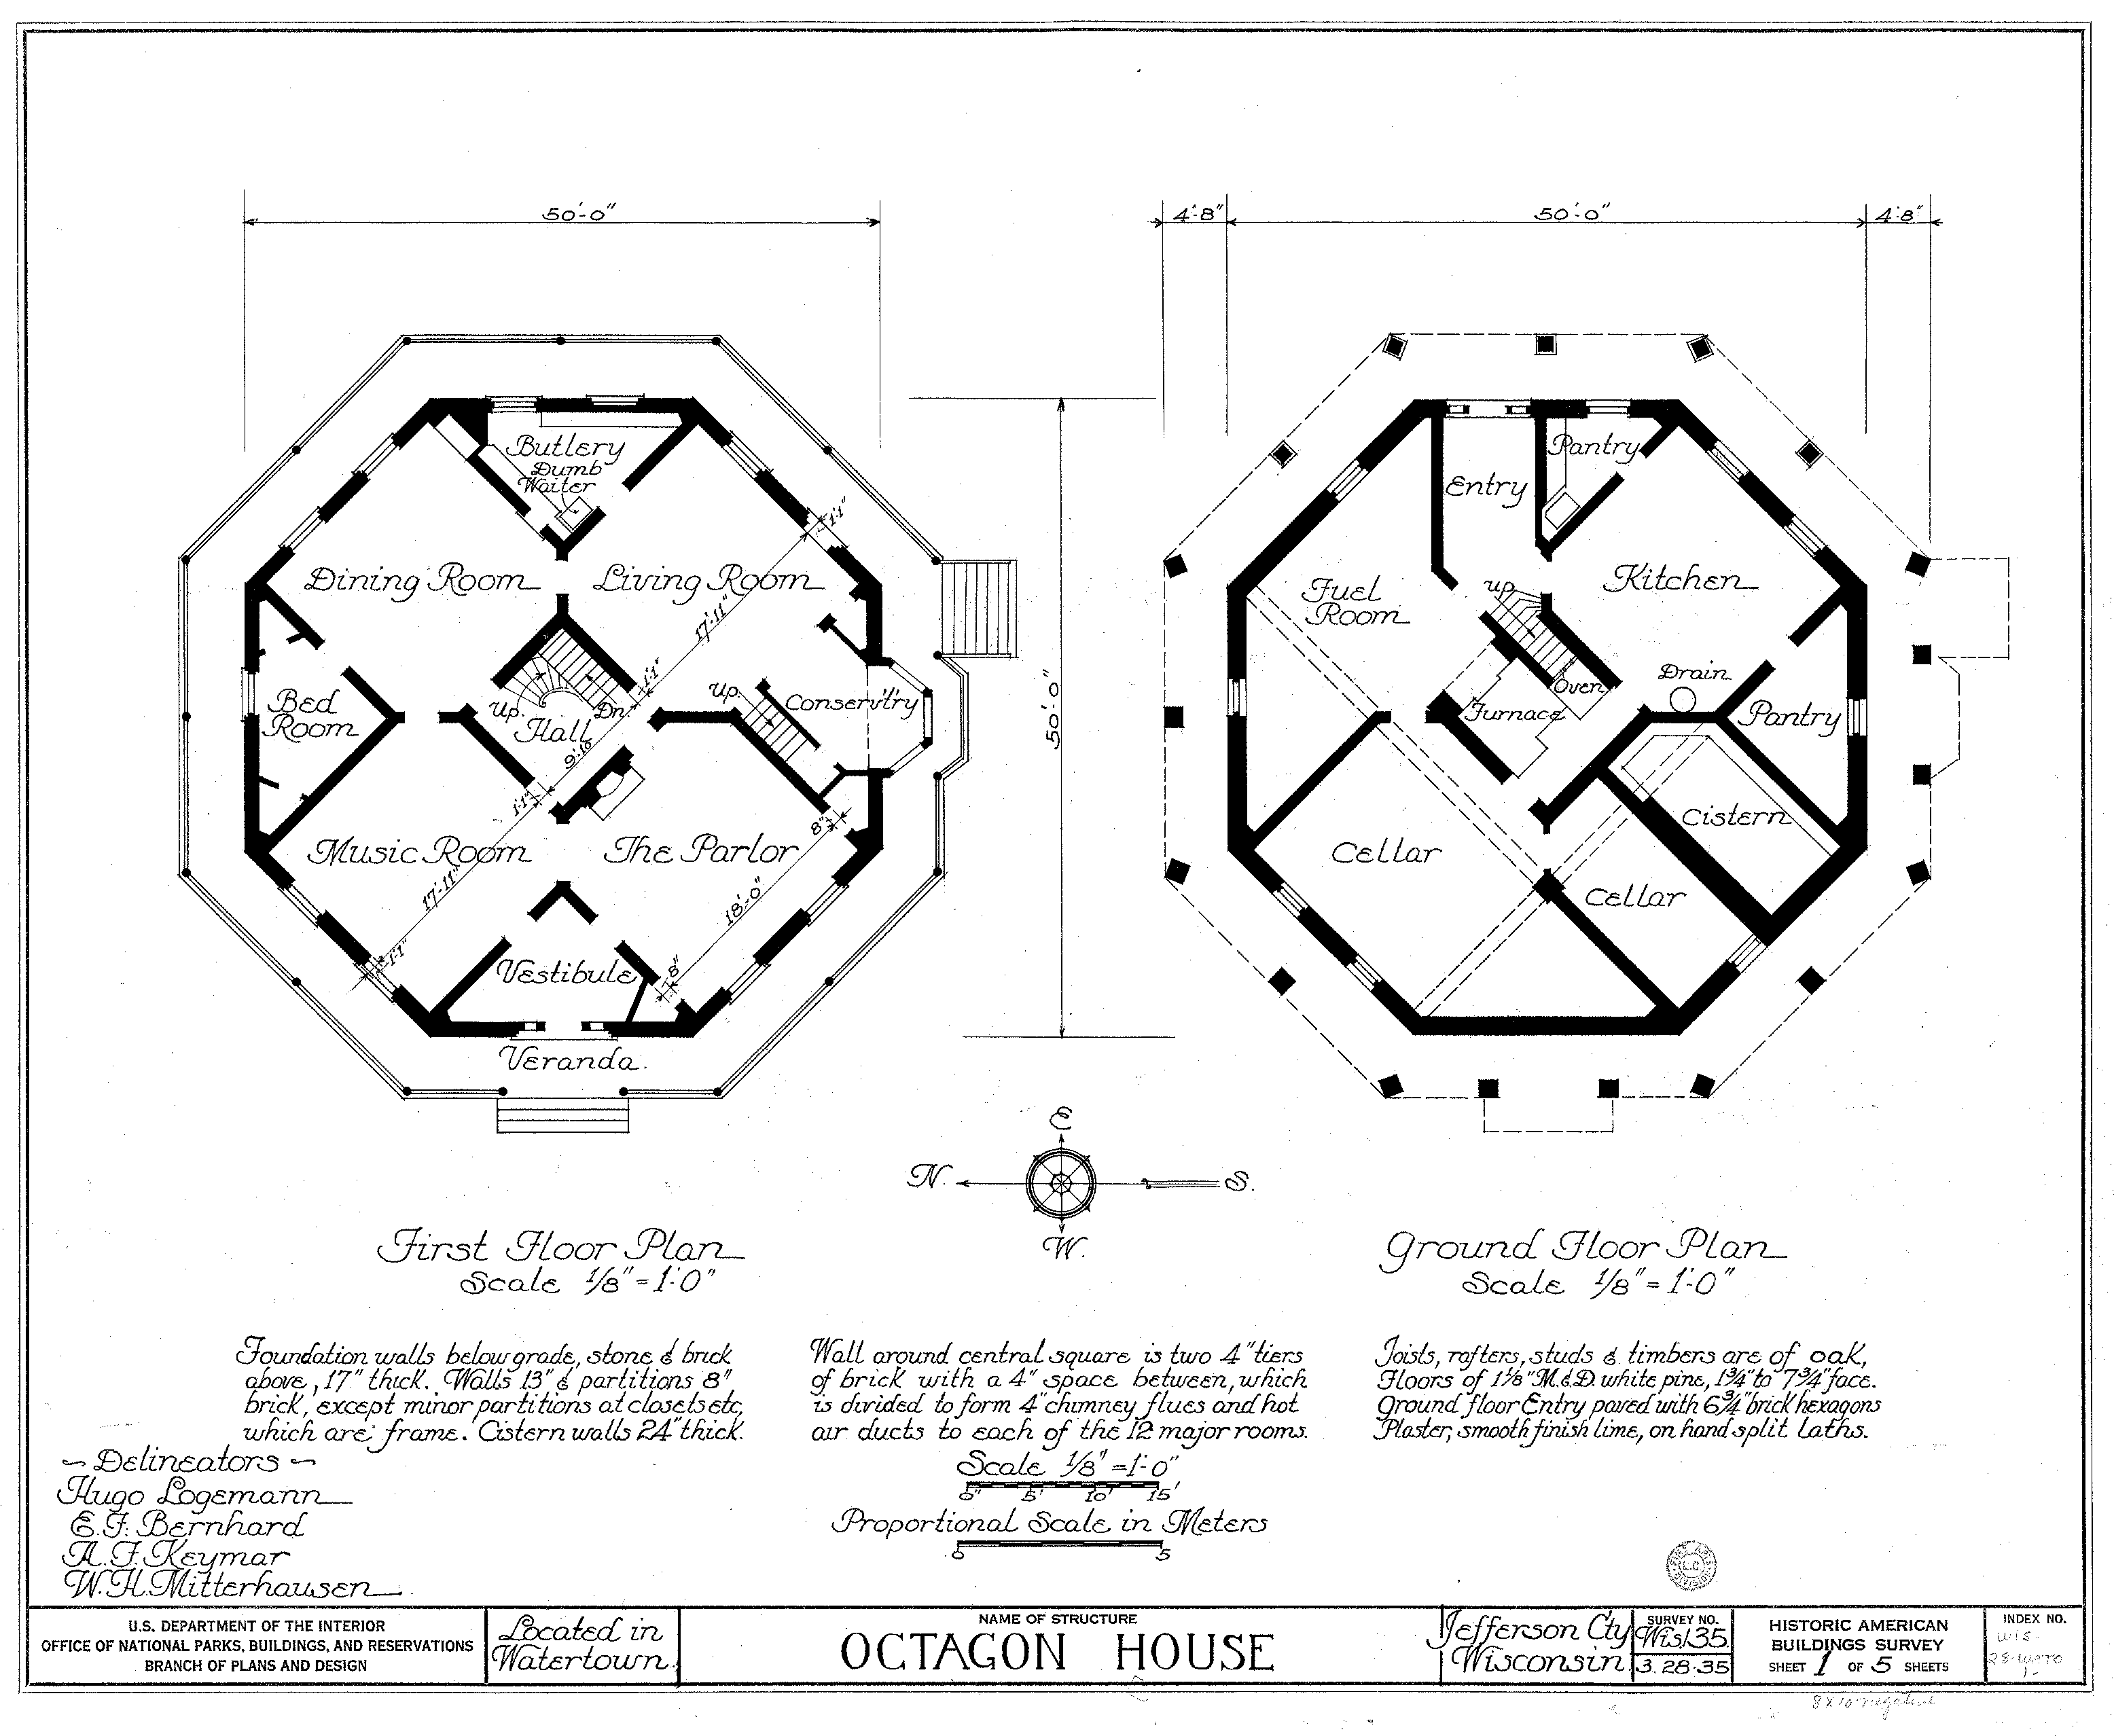 Plans For Houses estate dream home plans dream home house plans Details About Octagon House Plans Home Vintage Blueprint Design Custom Building Book Octagonal